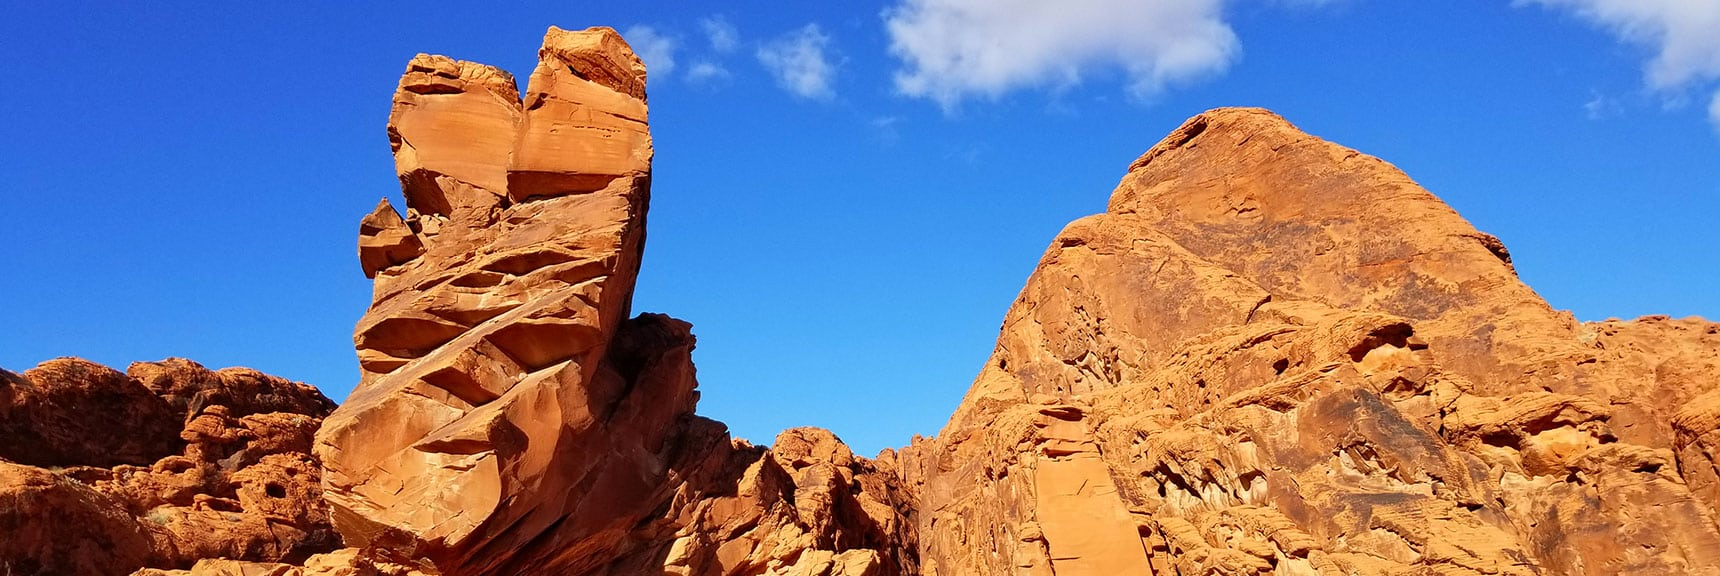 Balancing Rock Beyond Mouse's Tank Trail in Valley of Fire State Park, Nevada